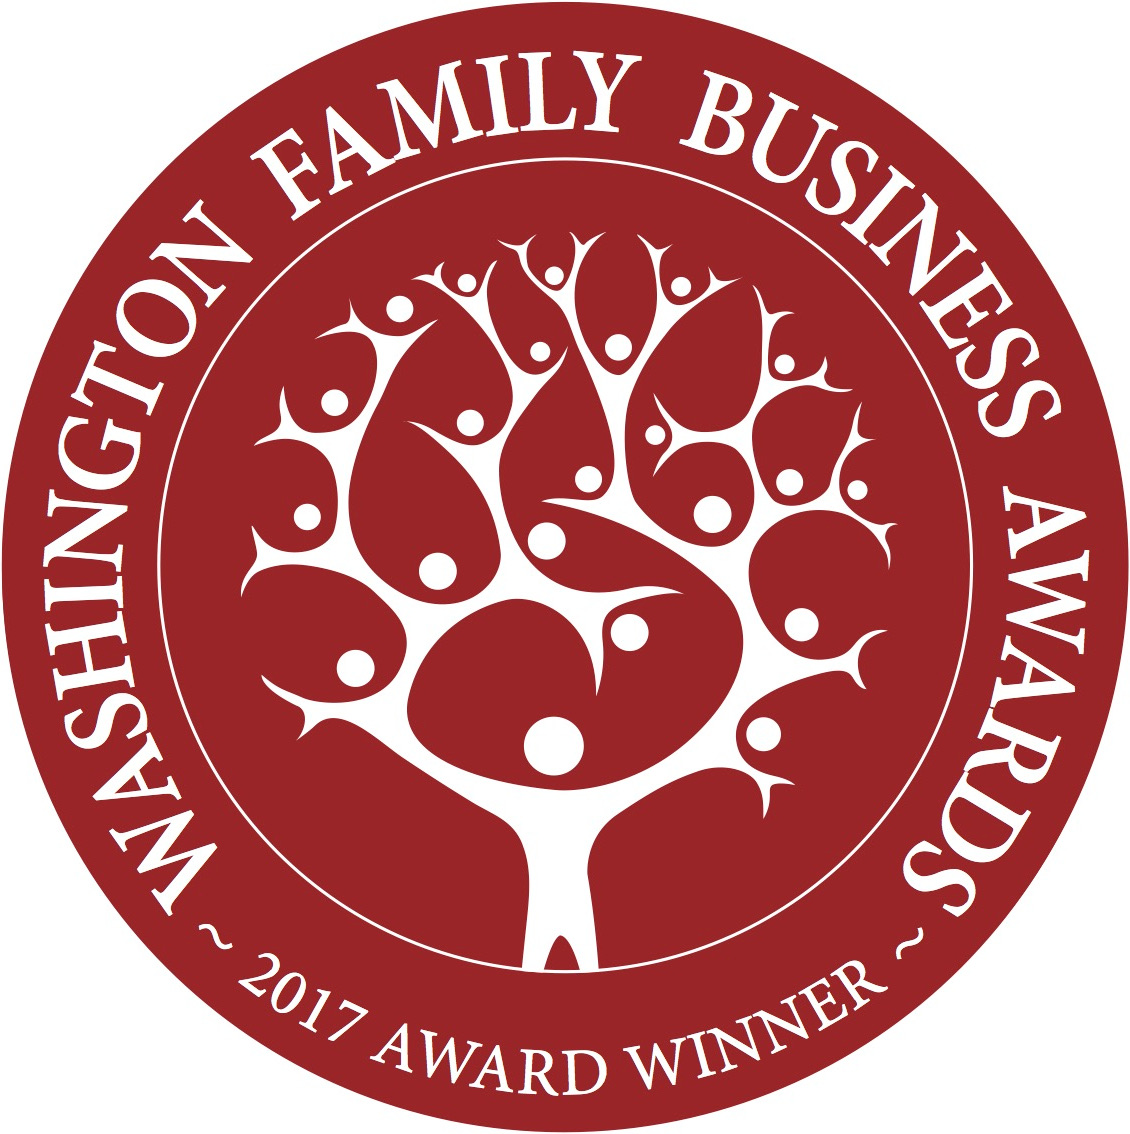 2017 Family Business Award